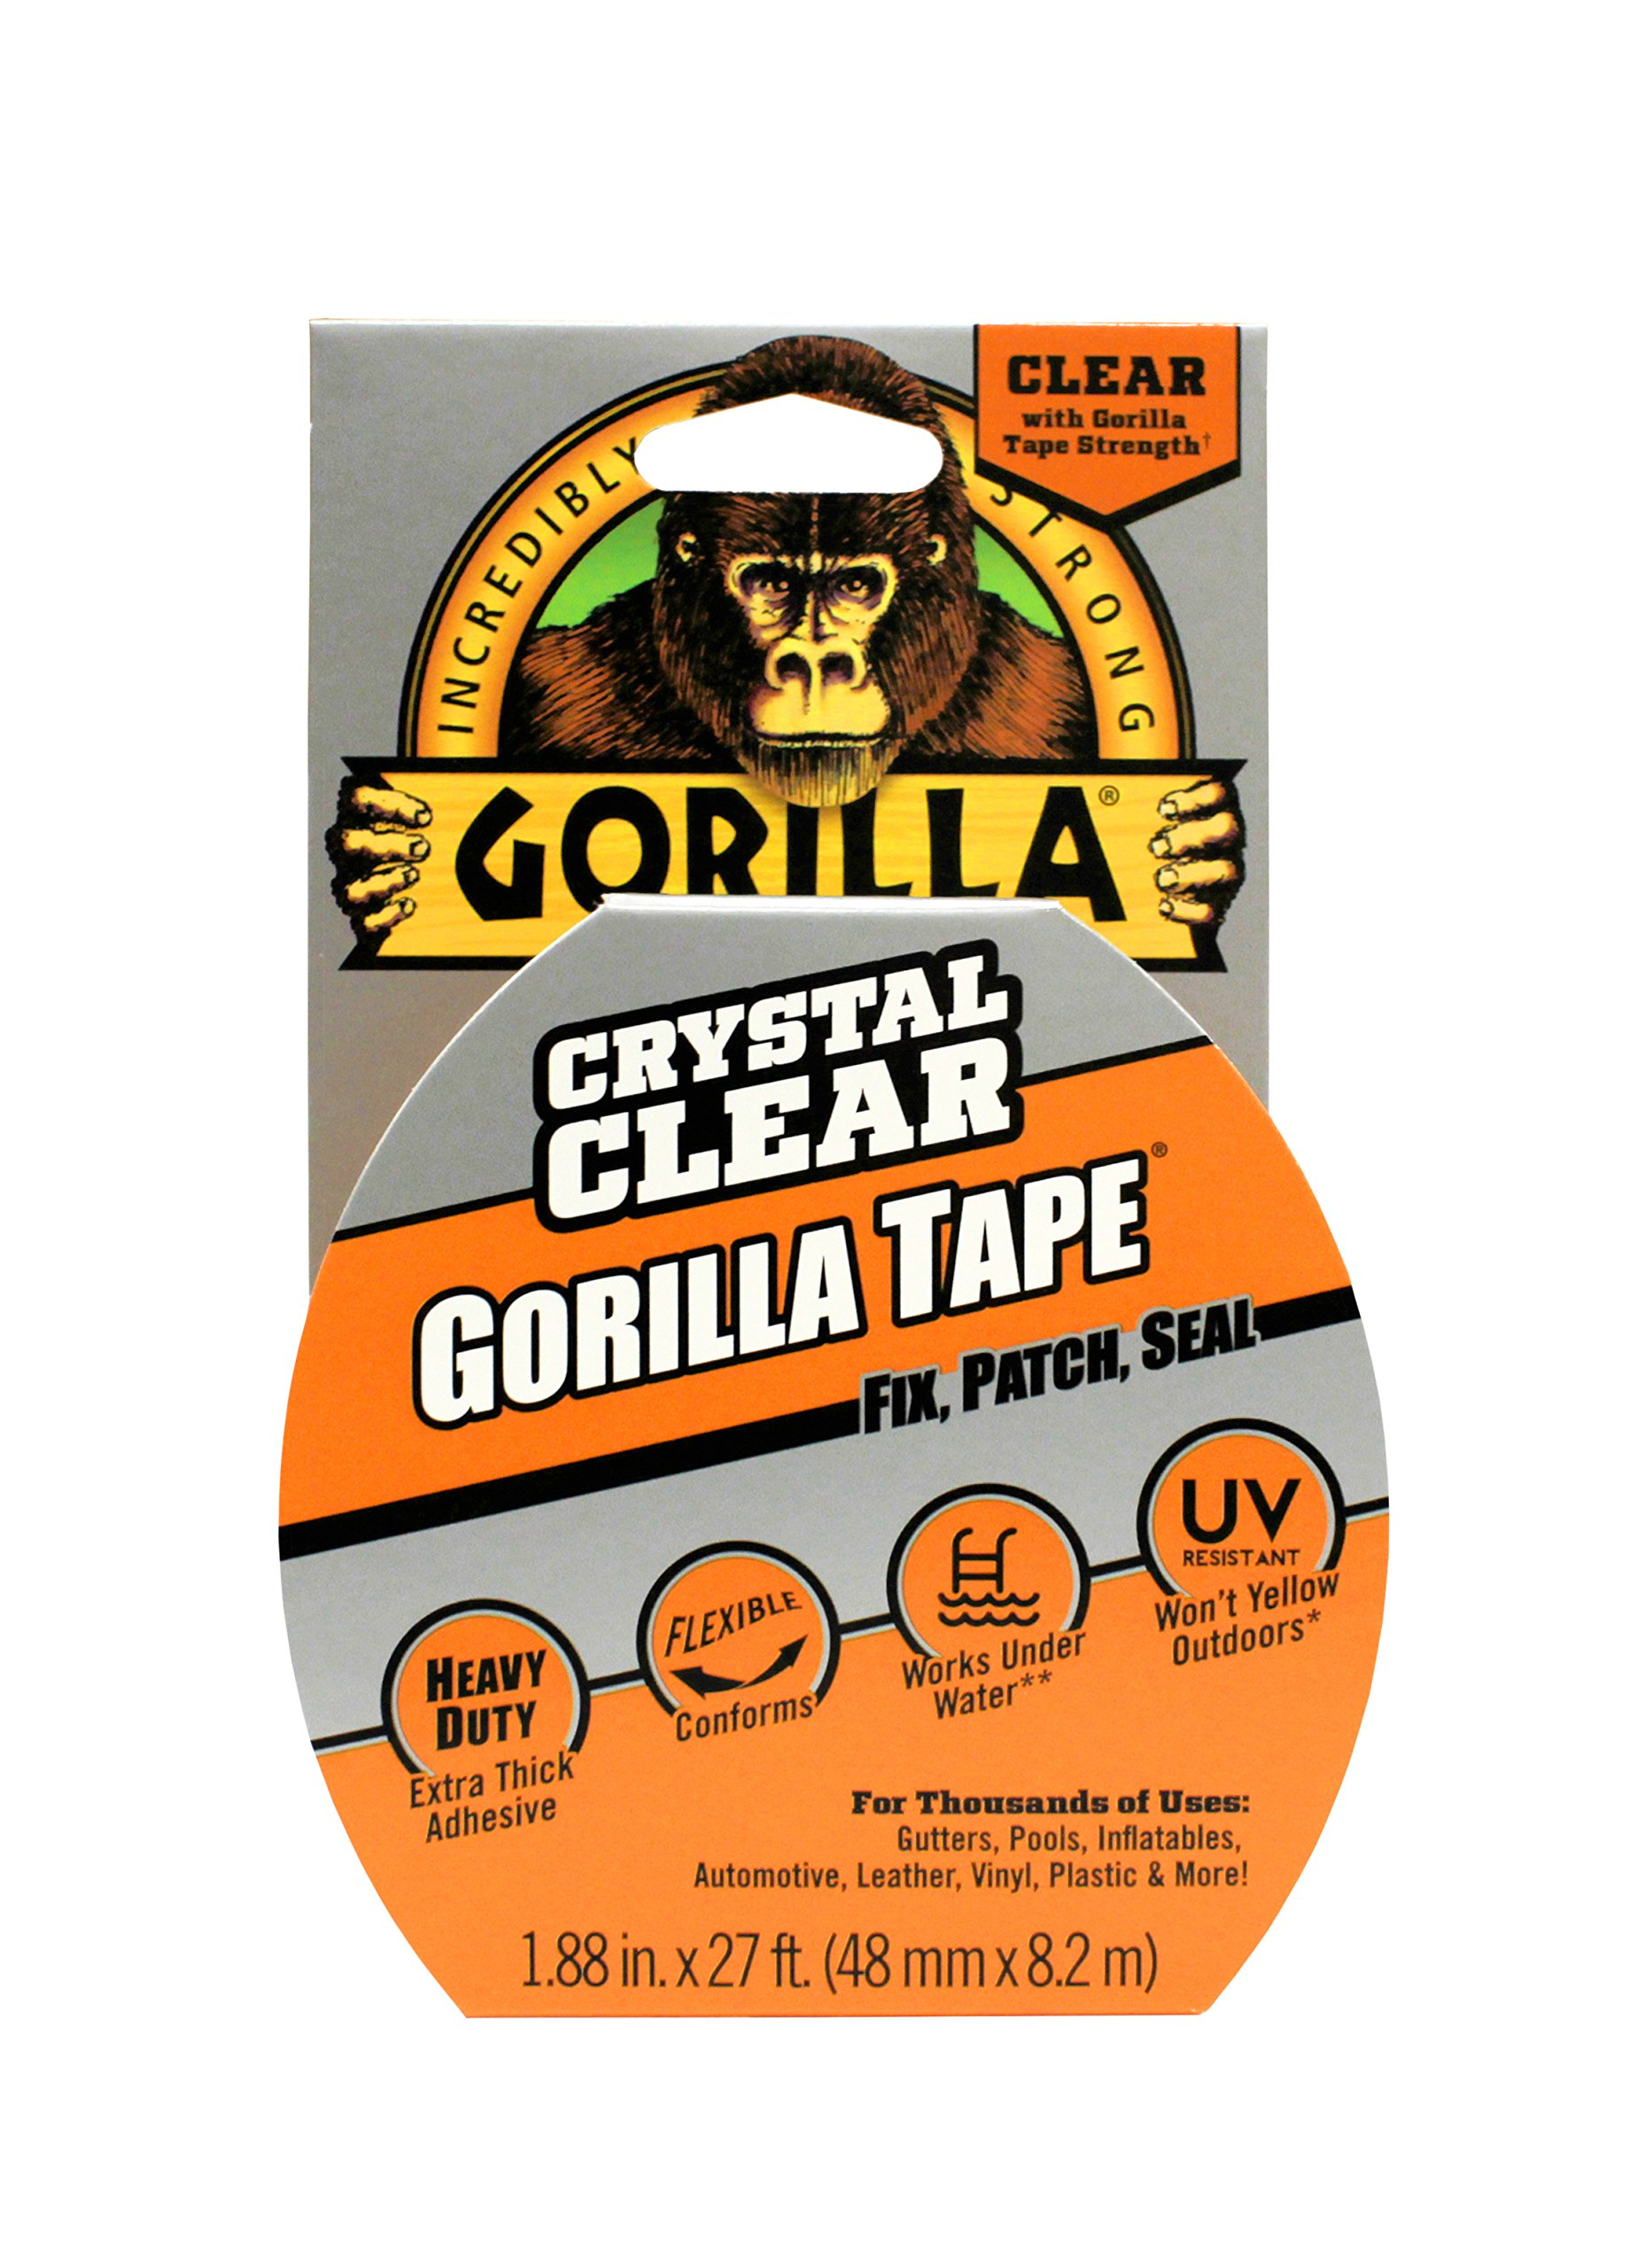 Gorilla Tape, Crystal Clear Duct Tape, 188 X 9 Yd,